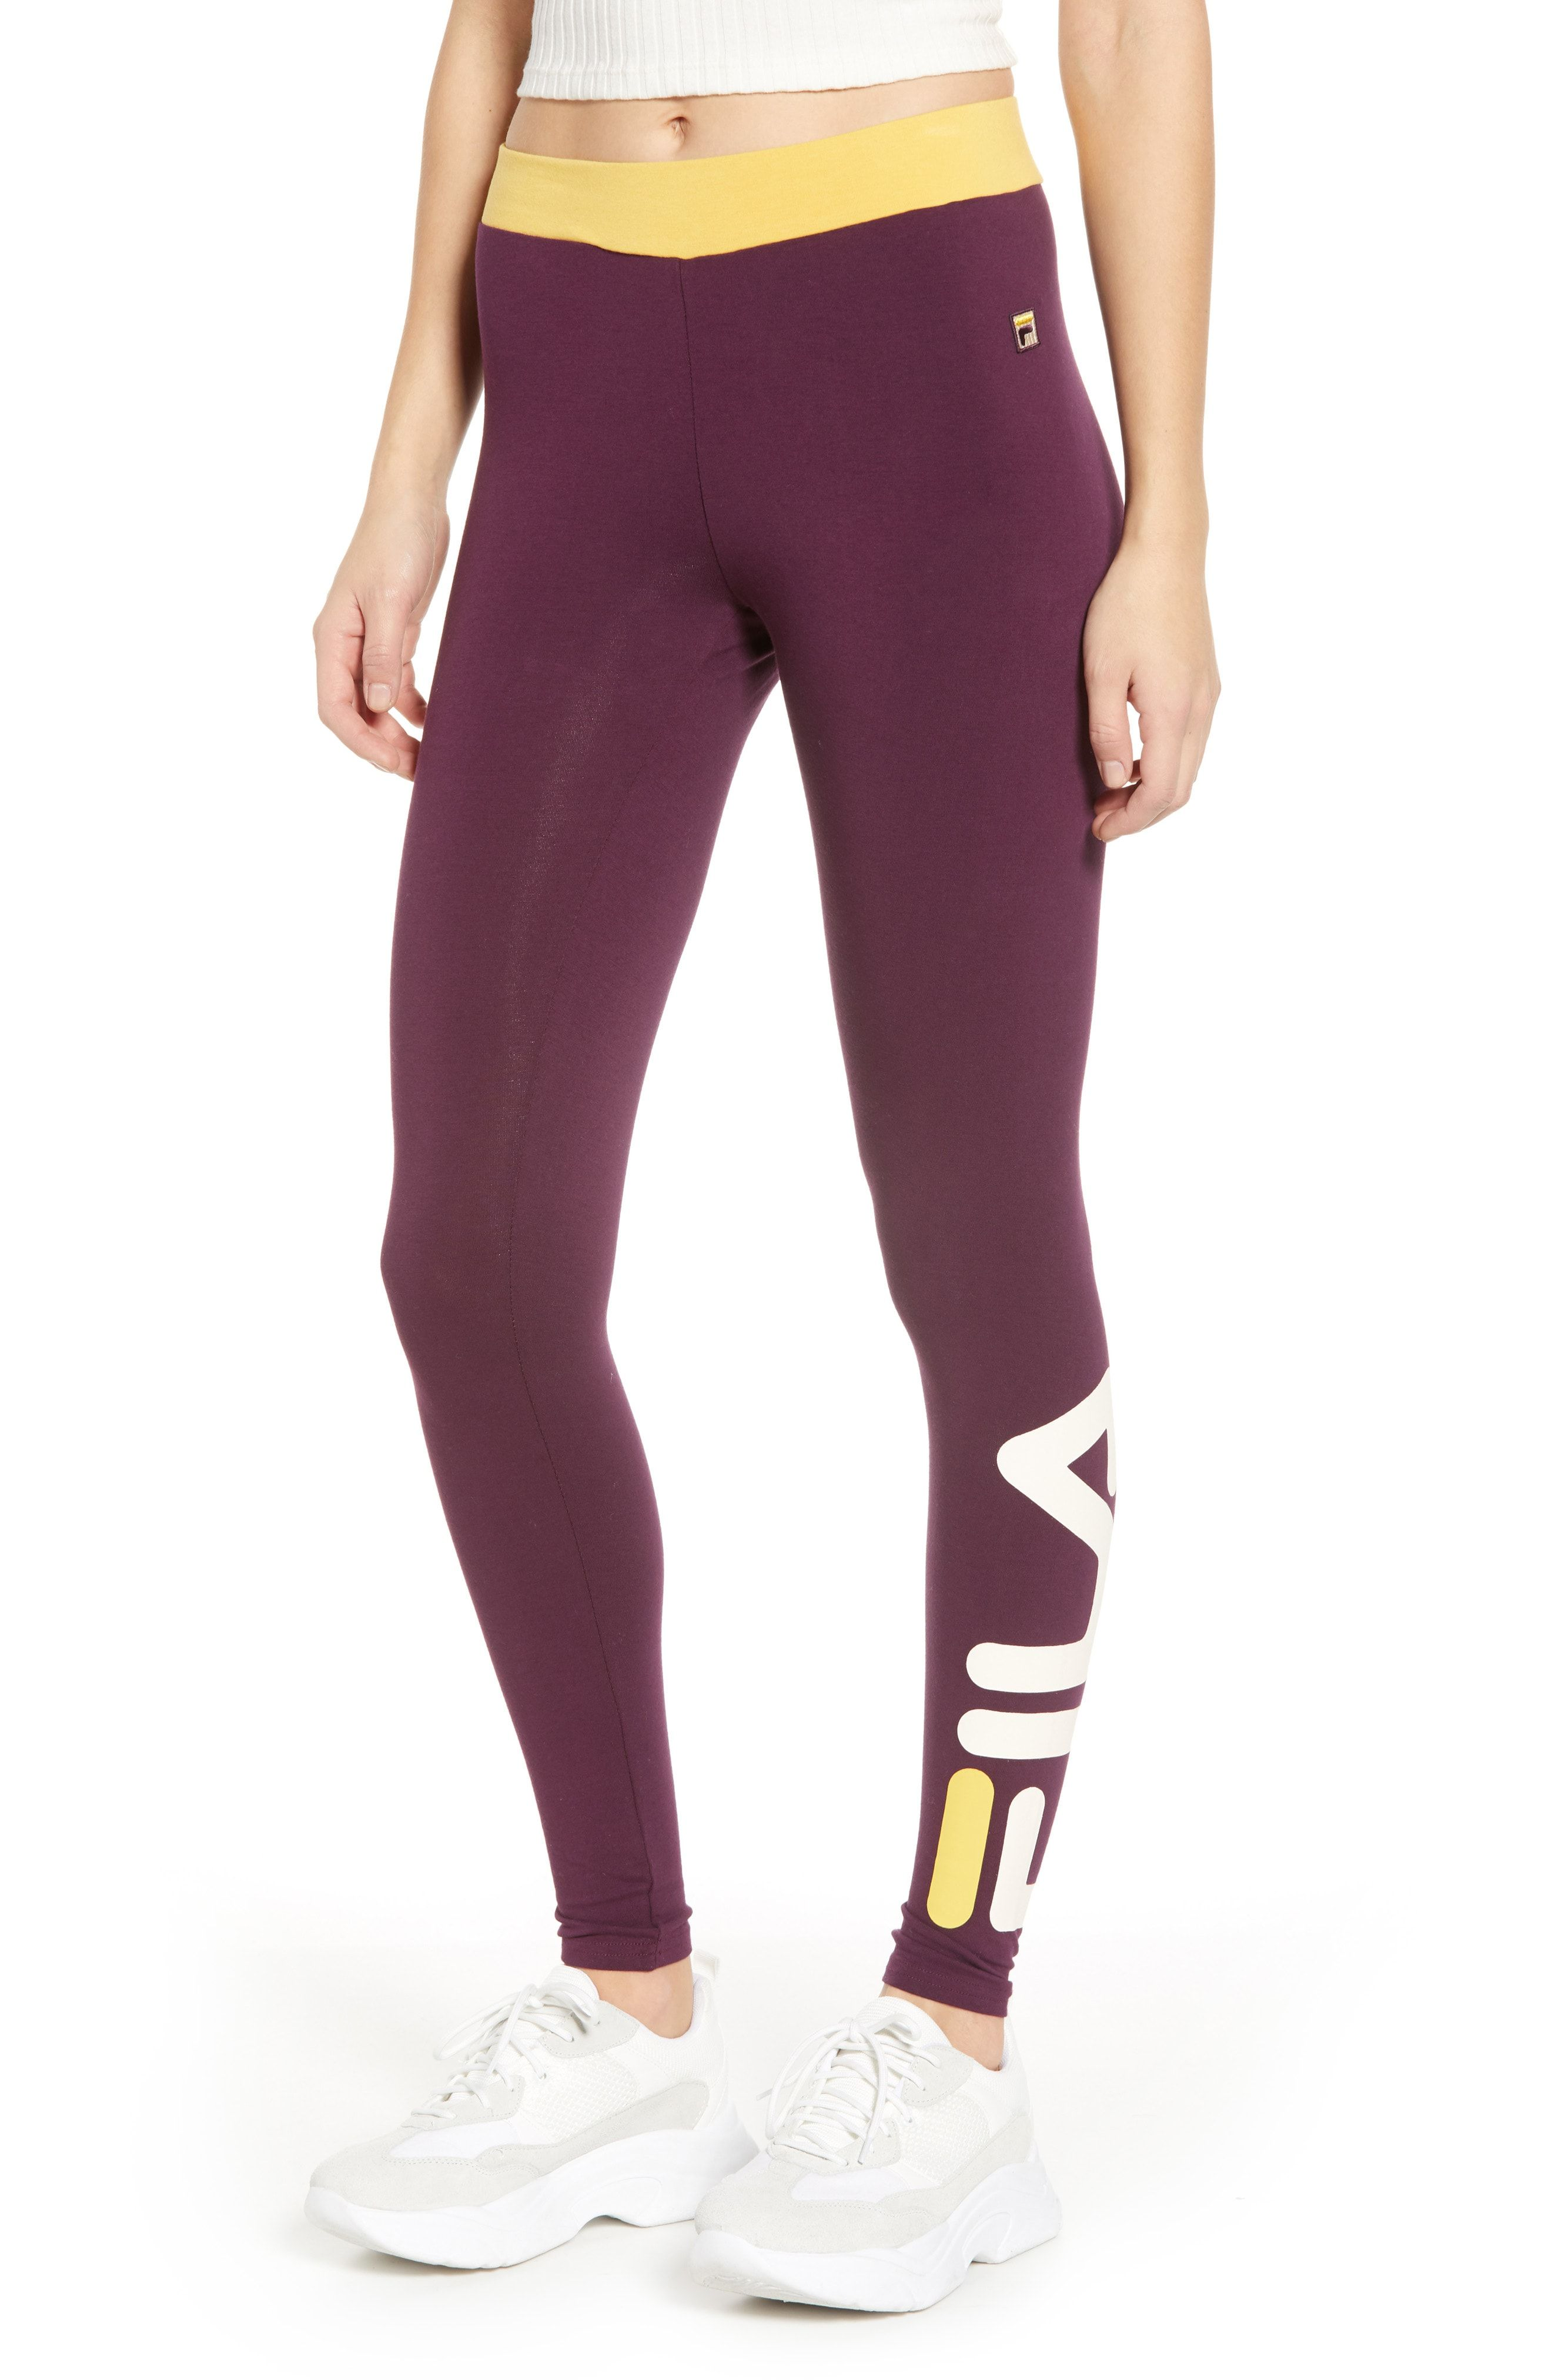 9edb5ace9 10 Best Workout Leggings From The Nordstrom Winter Sale 2019